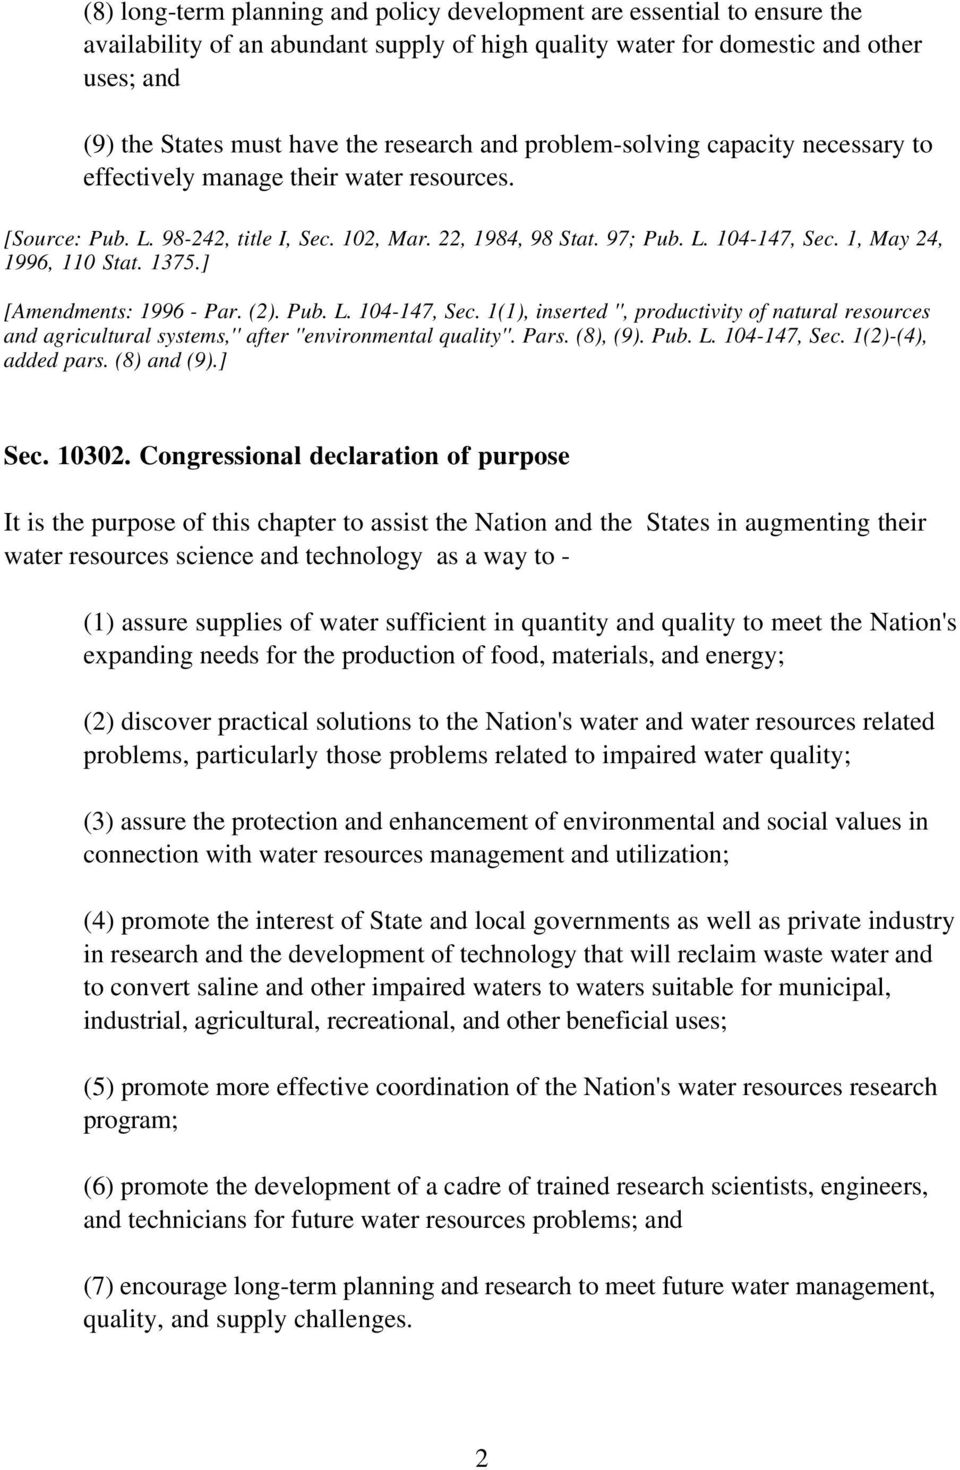 1, May 24, 1996, 110 Stat. 1375.] [Amendments: 1996 - Par. (2). Pub. L. 104-147, Sec. 1(1), inserted '', productivity of natural resources and agricultural systems,'' after ''environmental quality''.